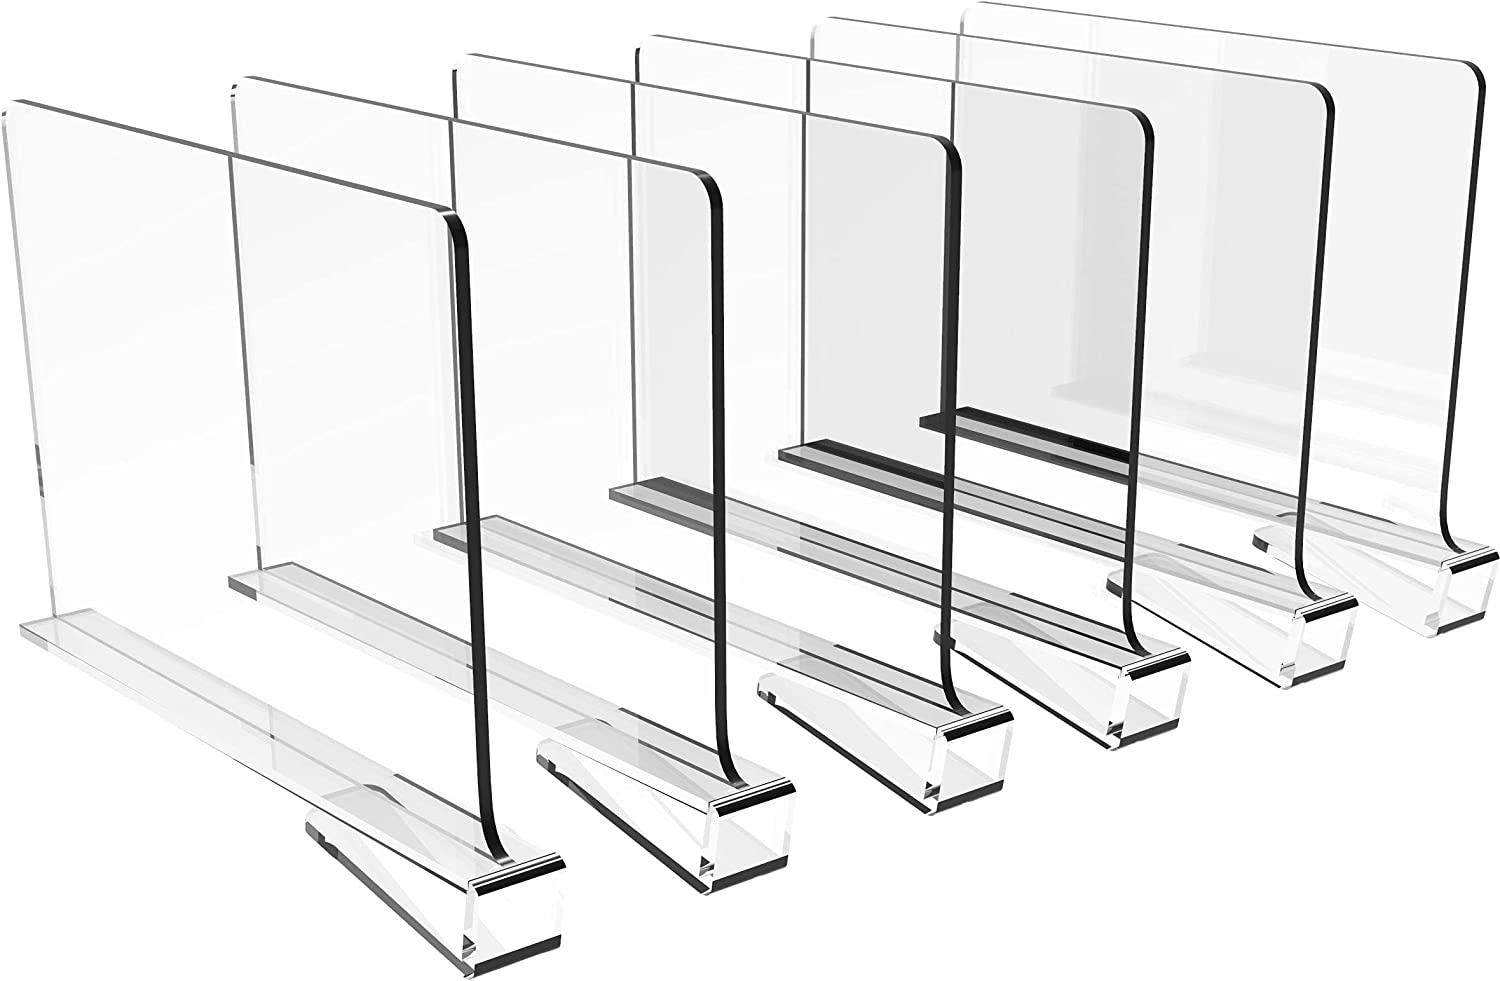 Cq acrylic 6PCS Shelf Dividers Closets Tampa Mall for Acrylic Quality inspection Clear D